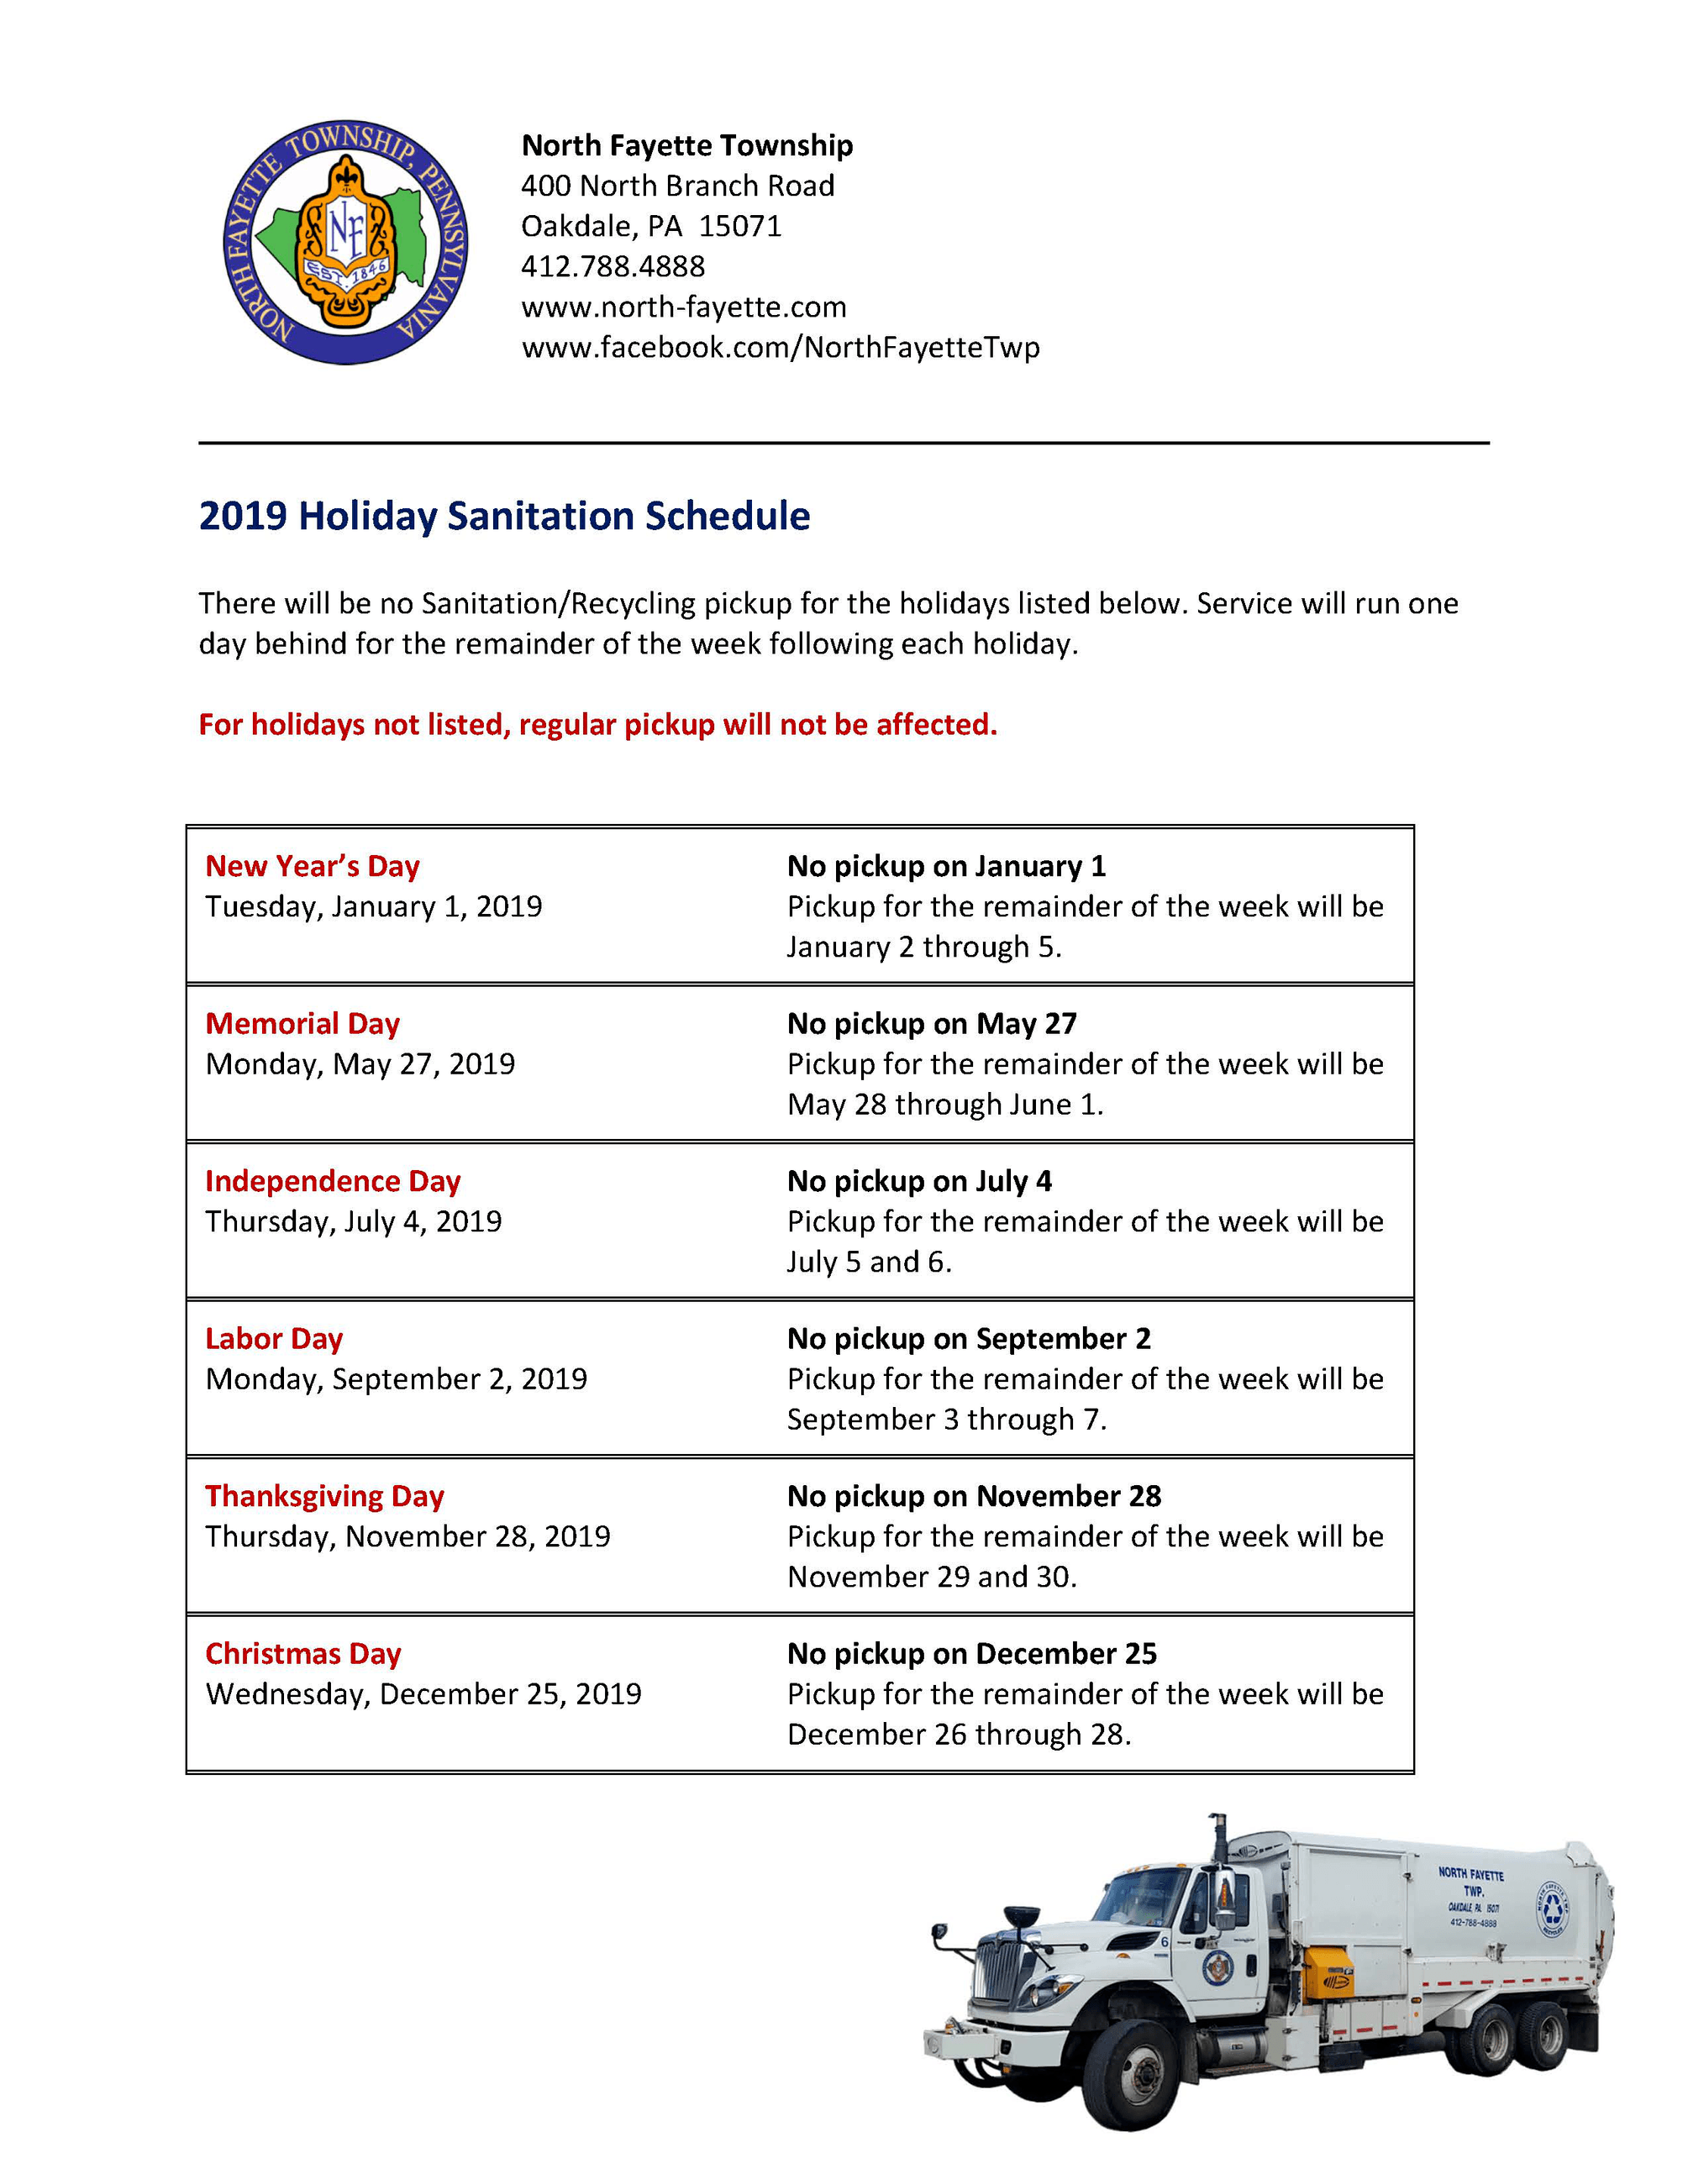 2019 Holiday Sanitation Schedule